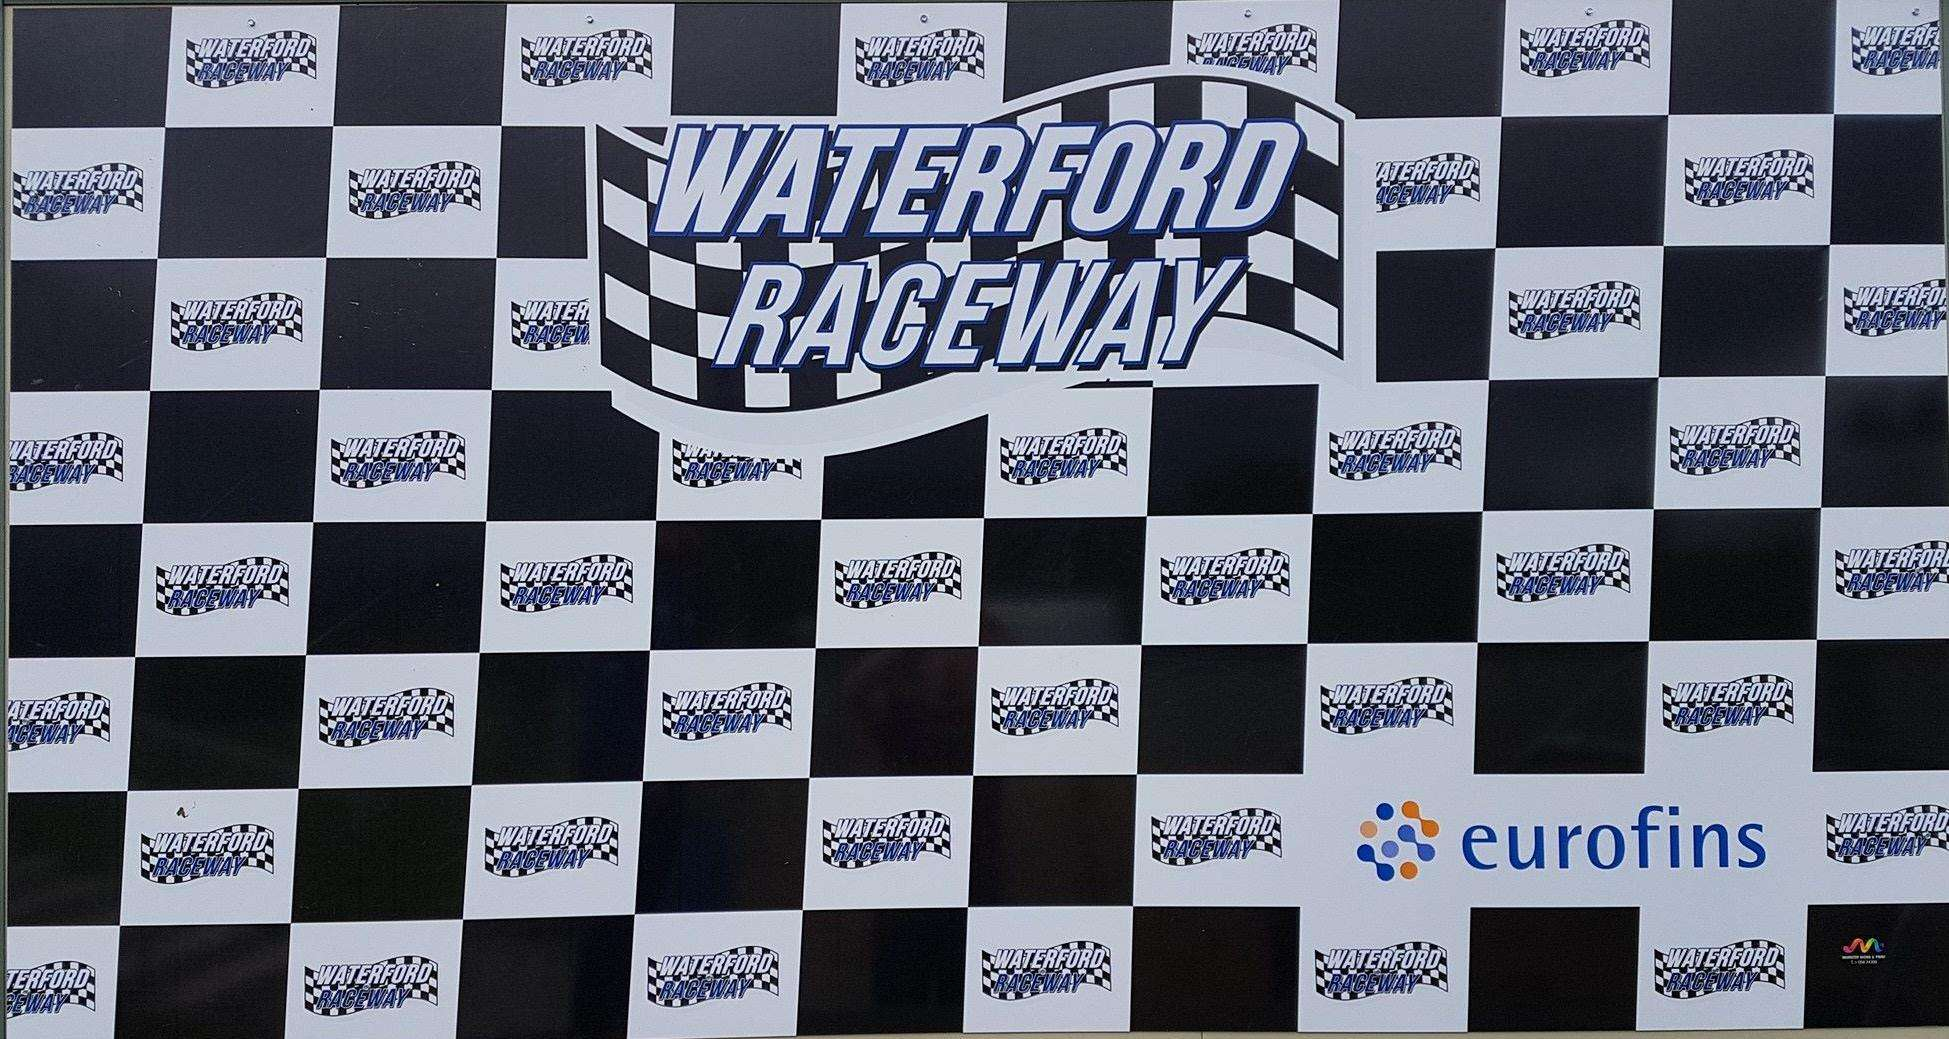 Waterford Racway 2019 Prize Giving Social